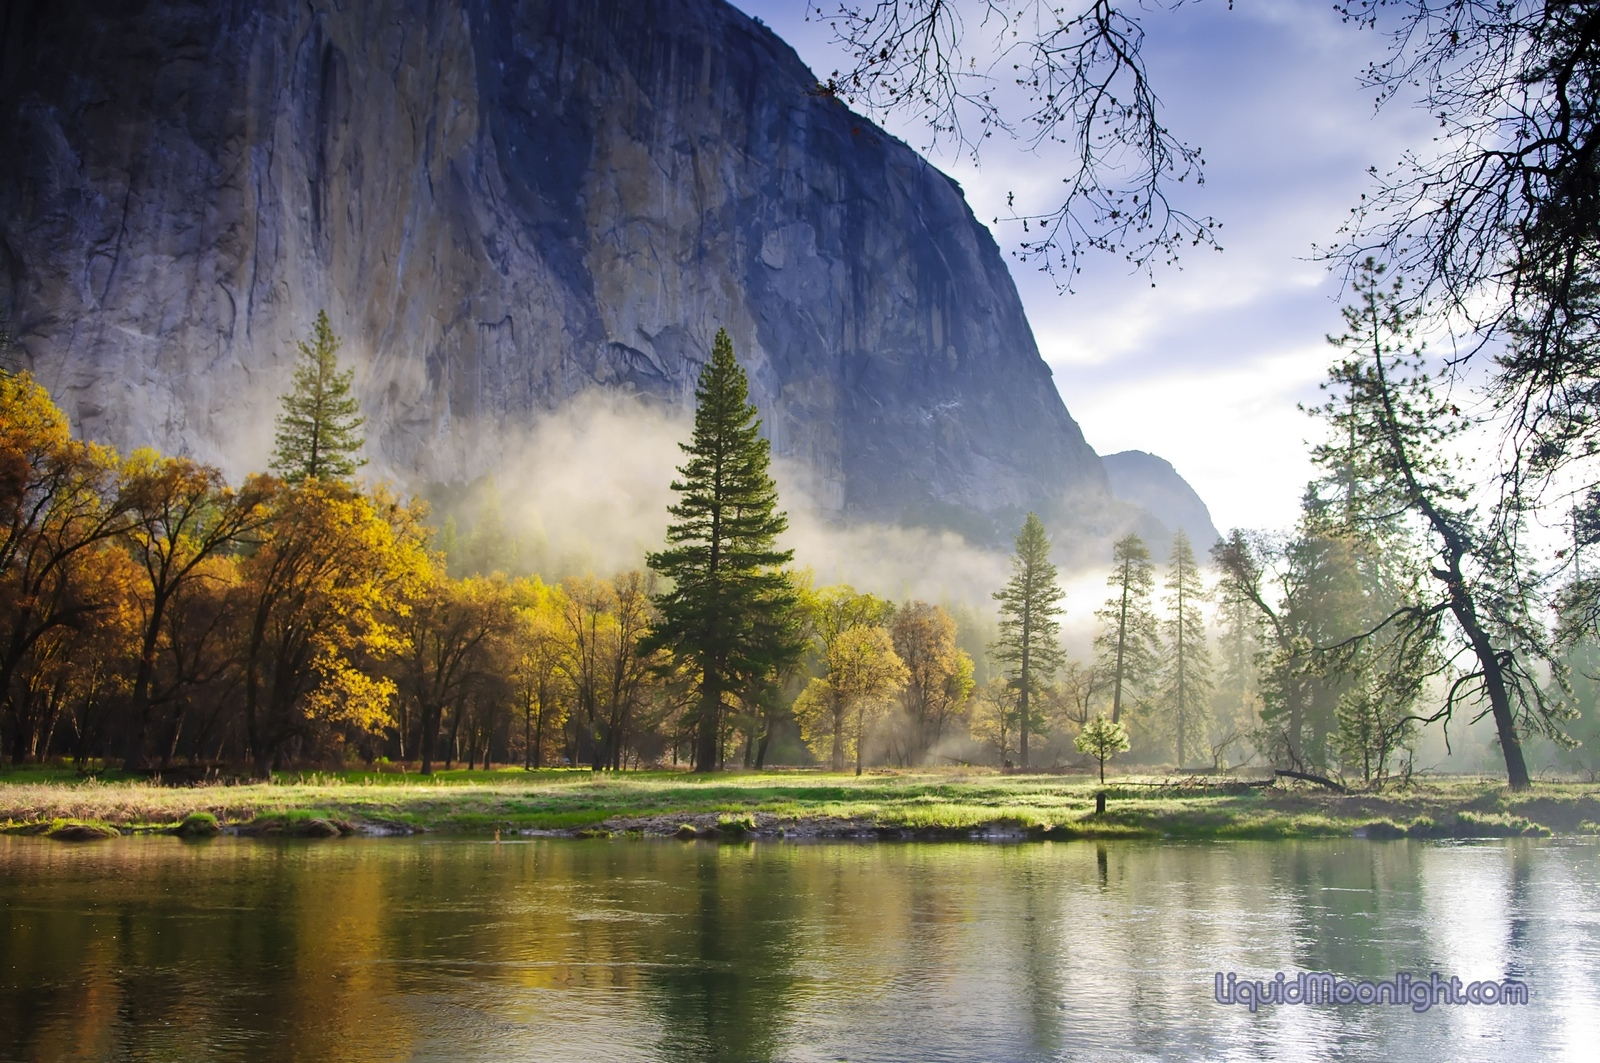 a report on visiting yosemite national park